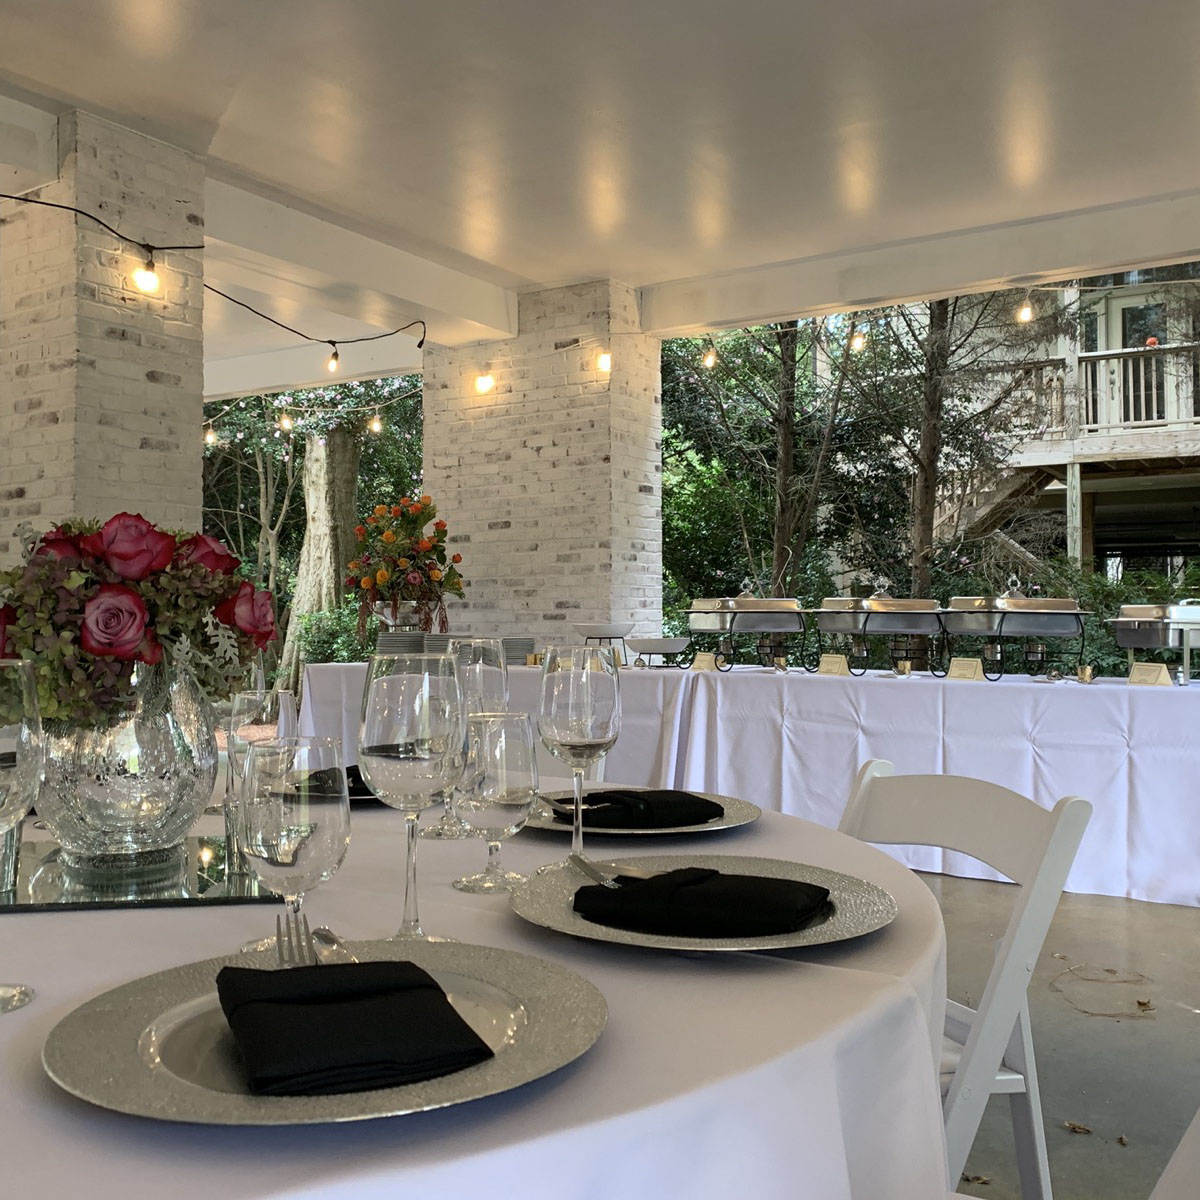 Table set for a backyard buffet dinner in Buckhead